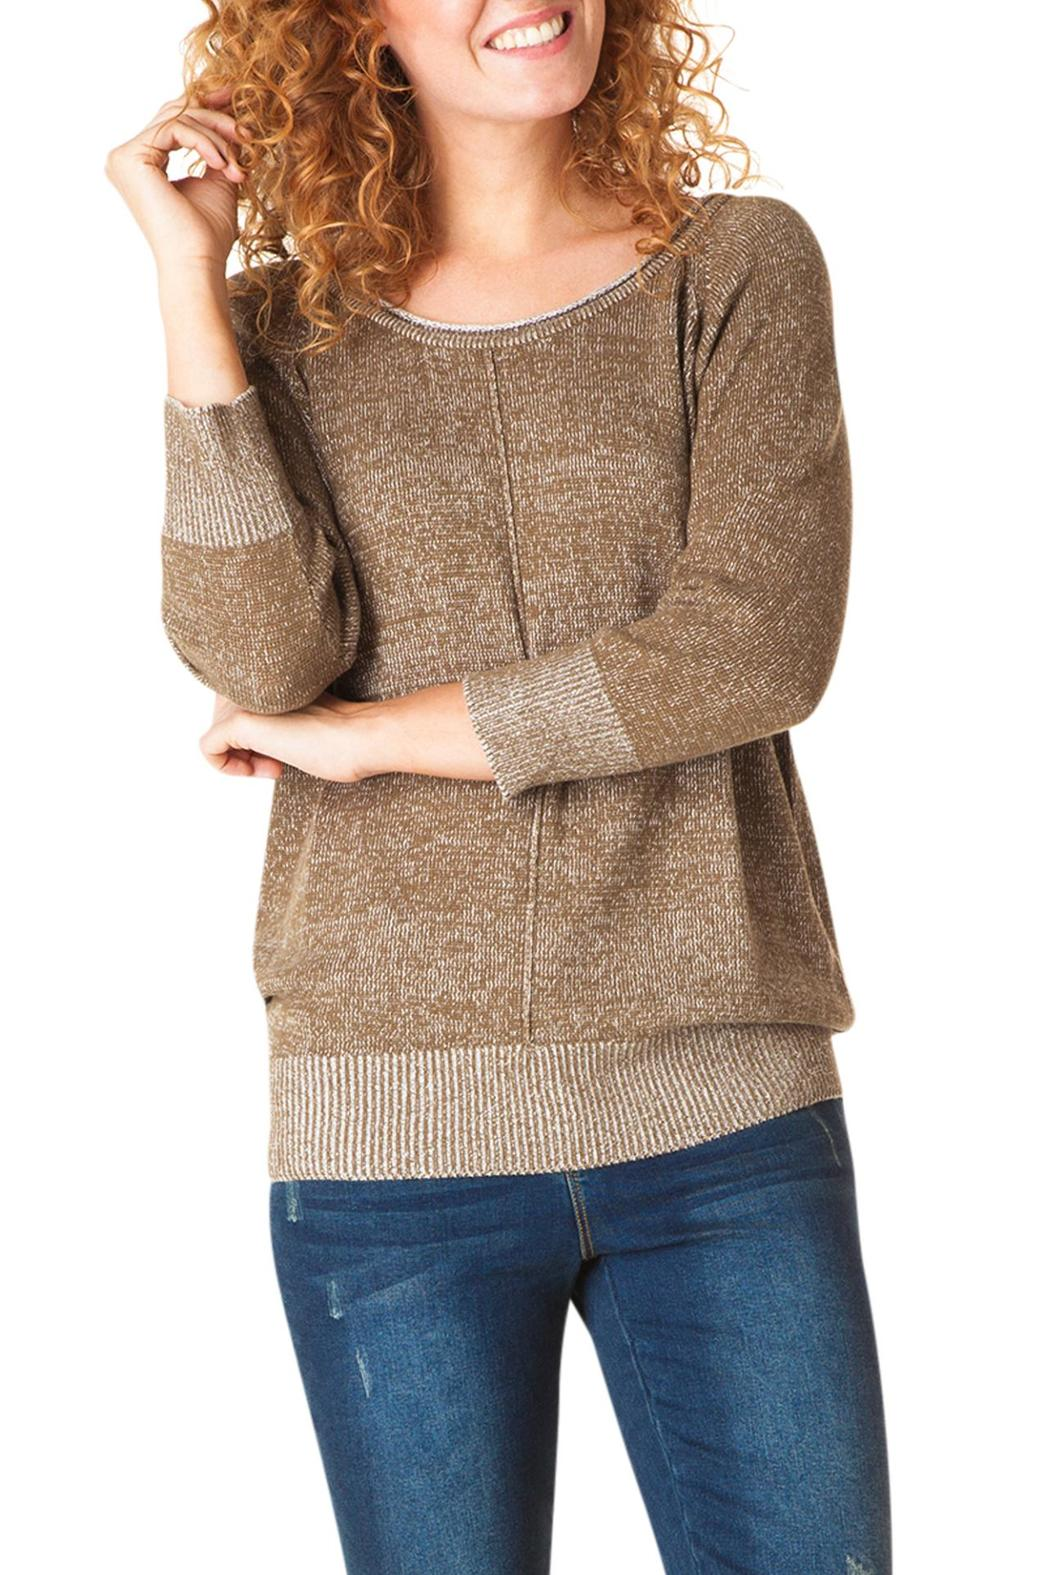 Yest Linear Knit Sweater - Main Image